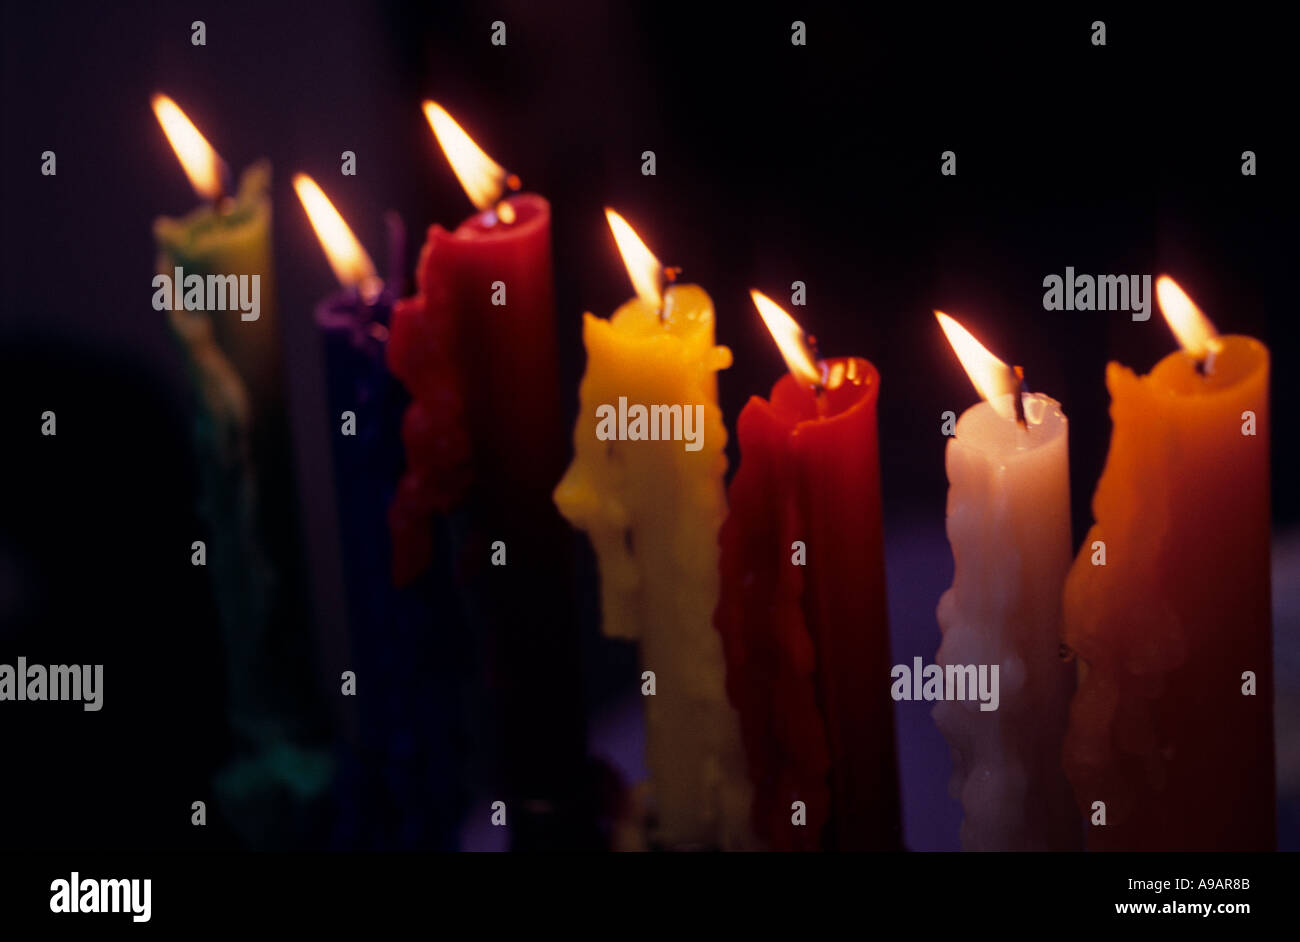 seven candles - Stock Image